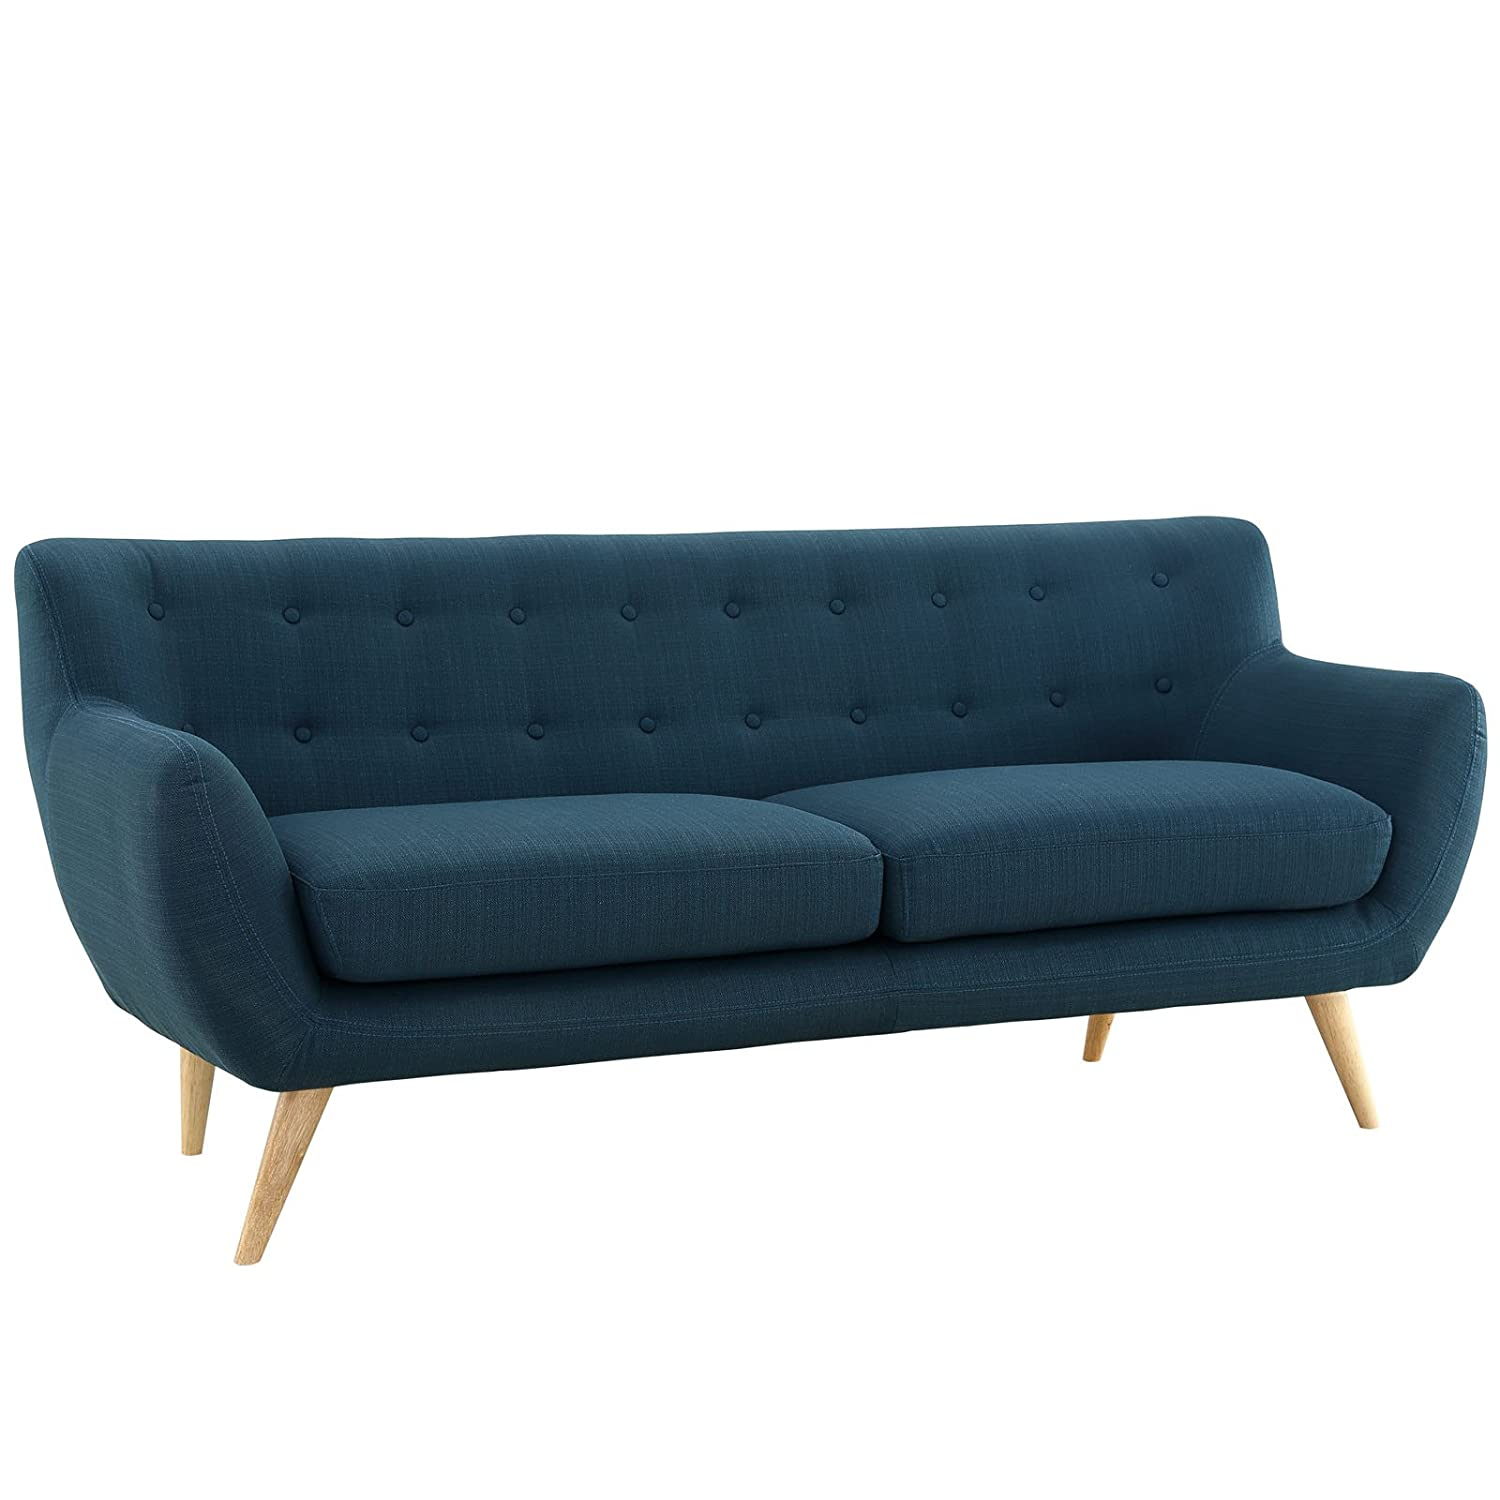 Amazon com modway remark mid century modern sofa with upholstered fabric in azure kitchen dining